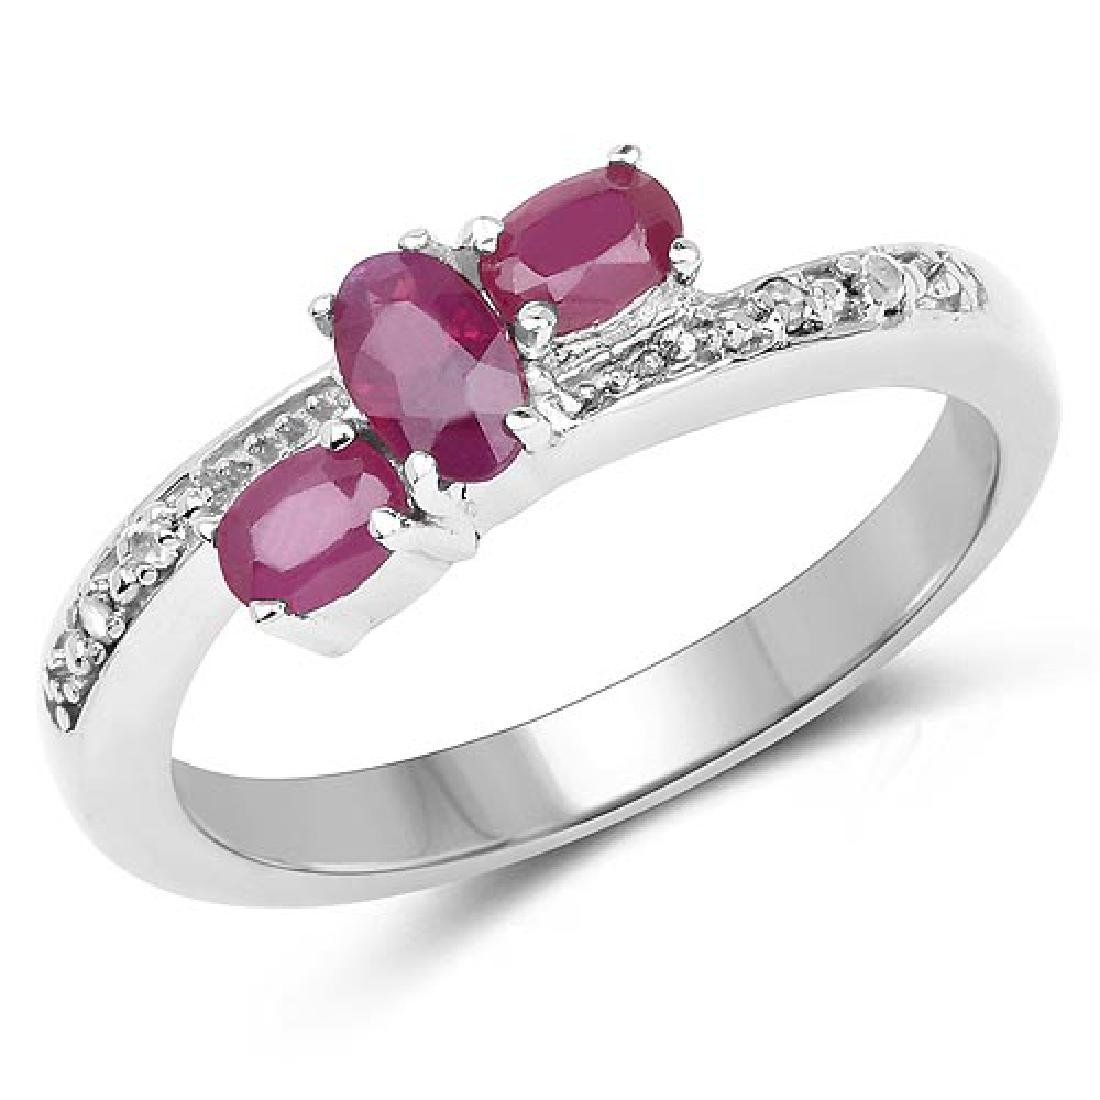 0.73 Carat Genuine Ruby and White Diamond .925 Sterling